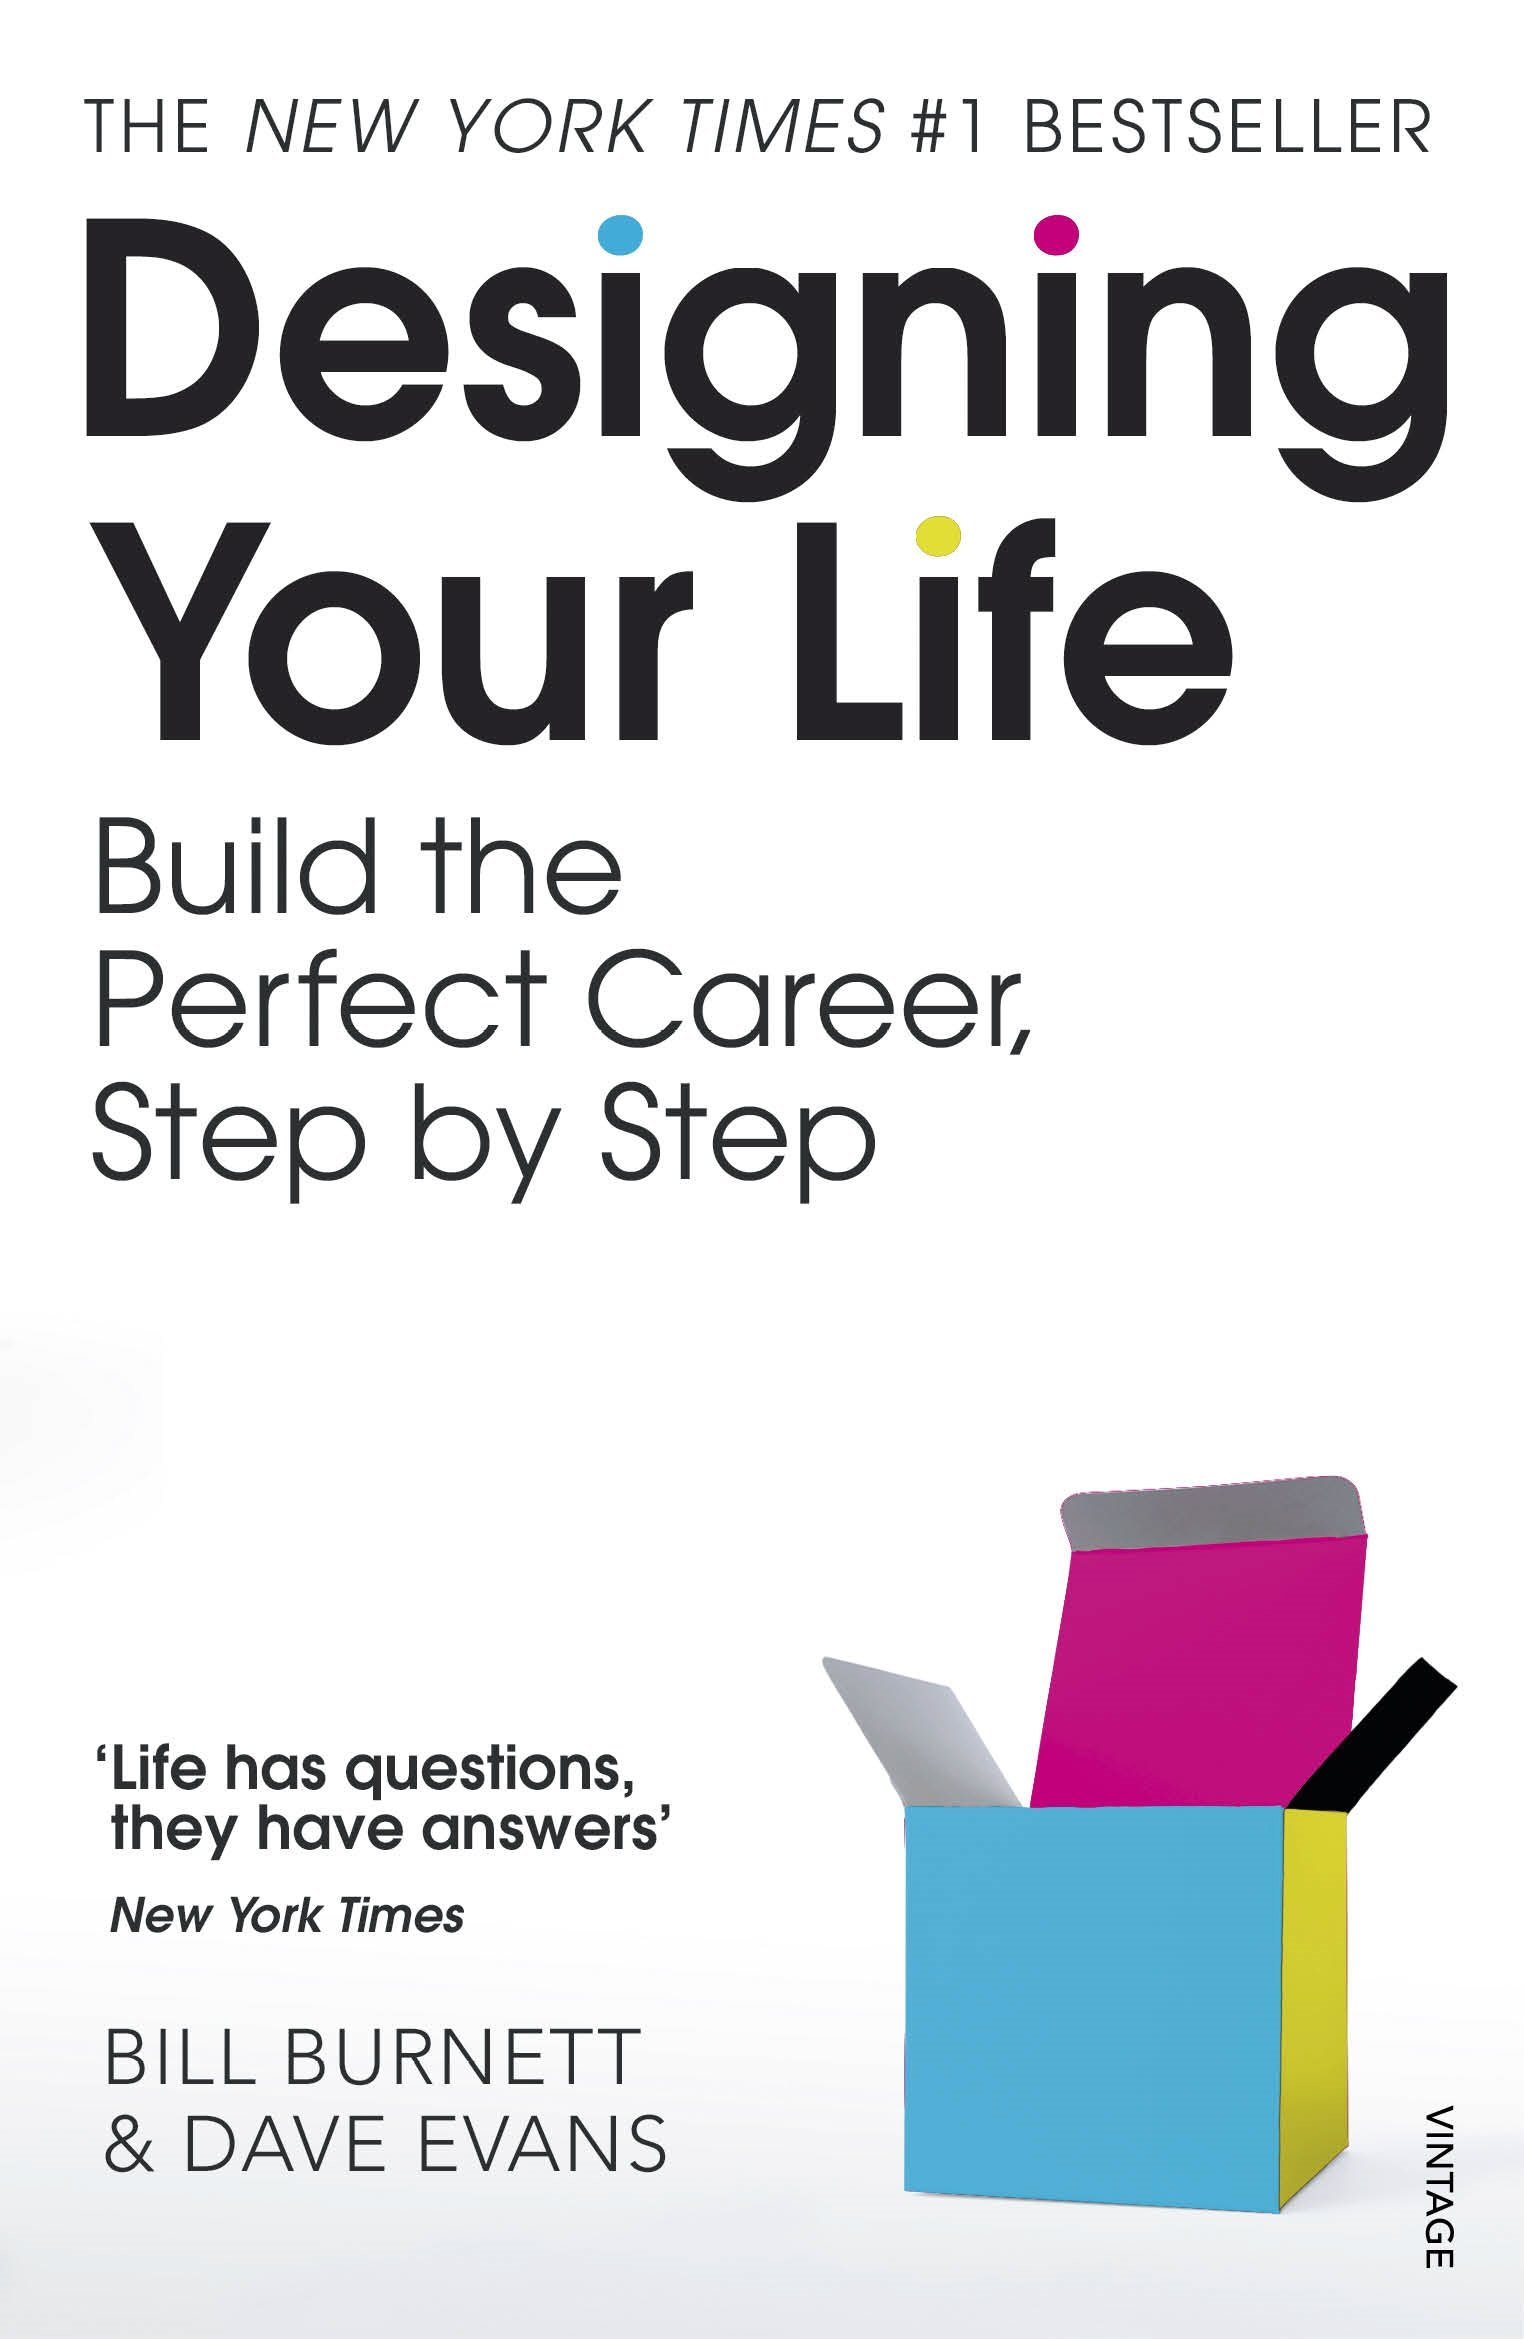 Designing Your Life - By Bill Burnett & Dave Evans